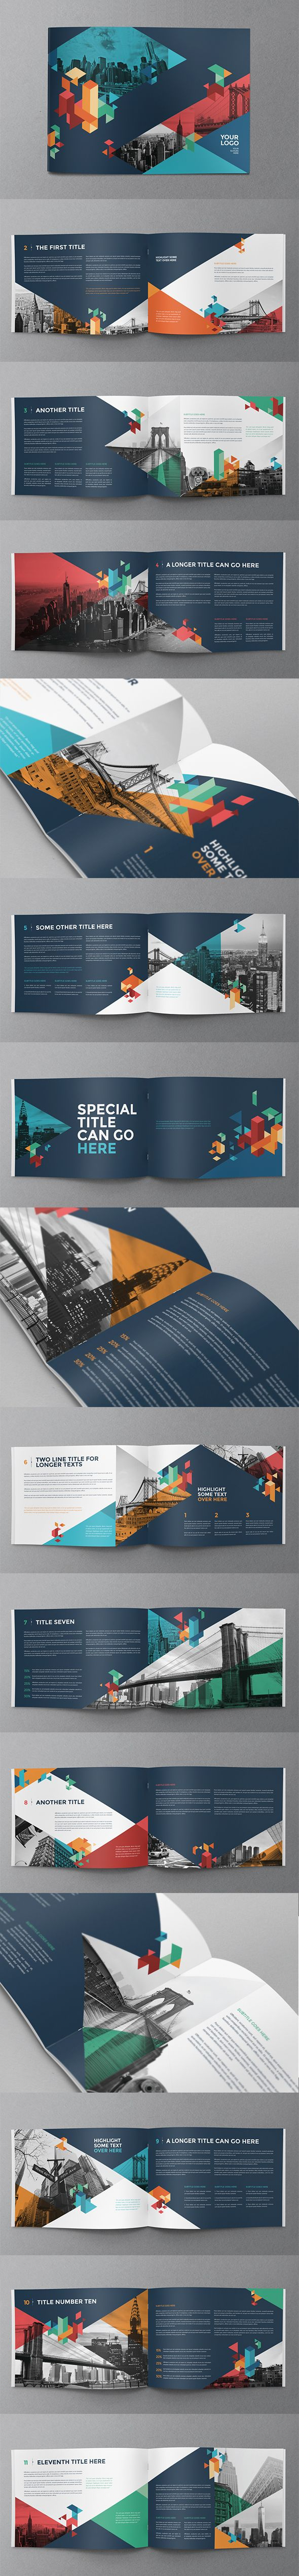 https://www.behance.net/gallery/24746021/Colorful-Blue-Brochure